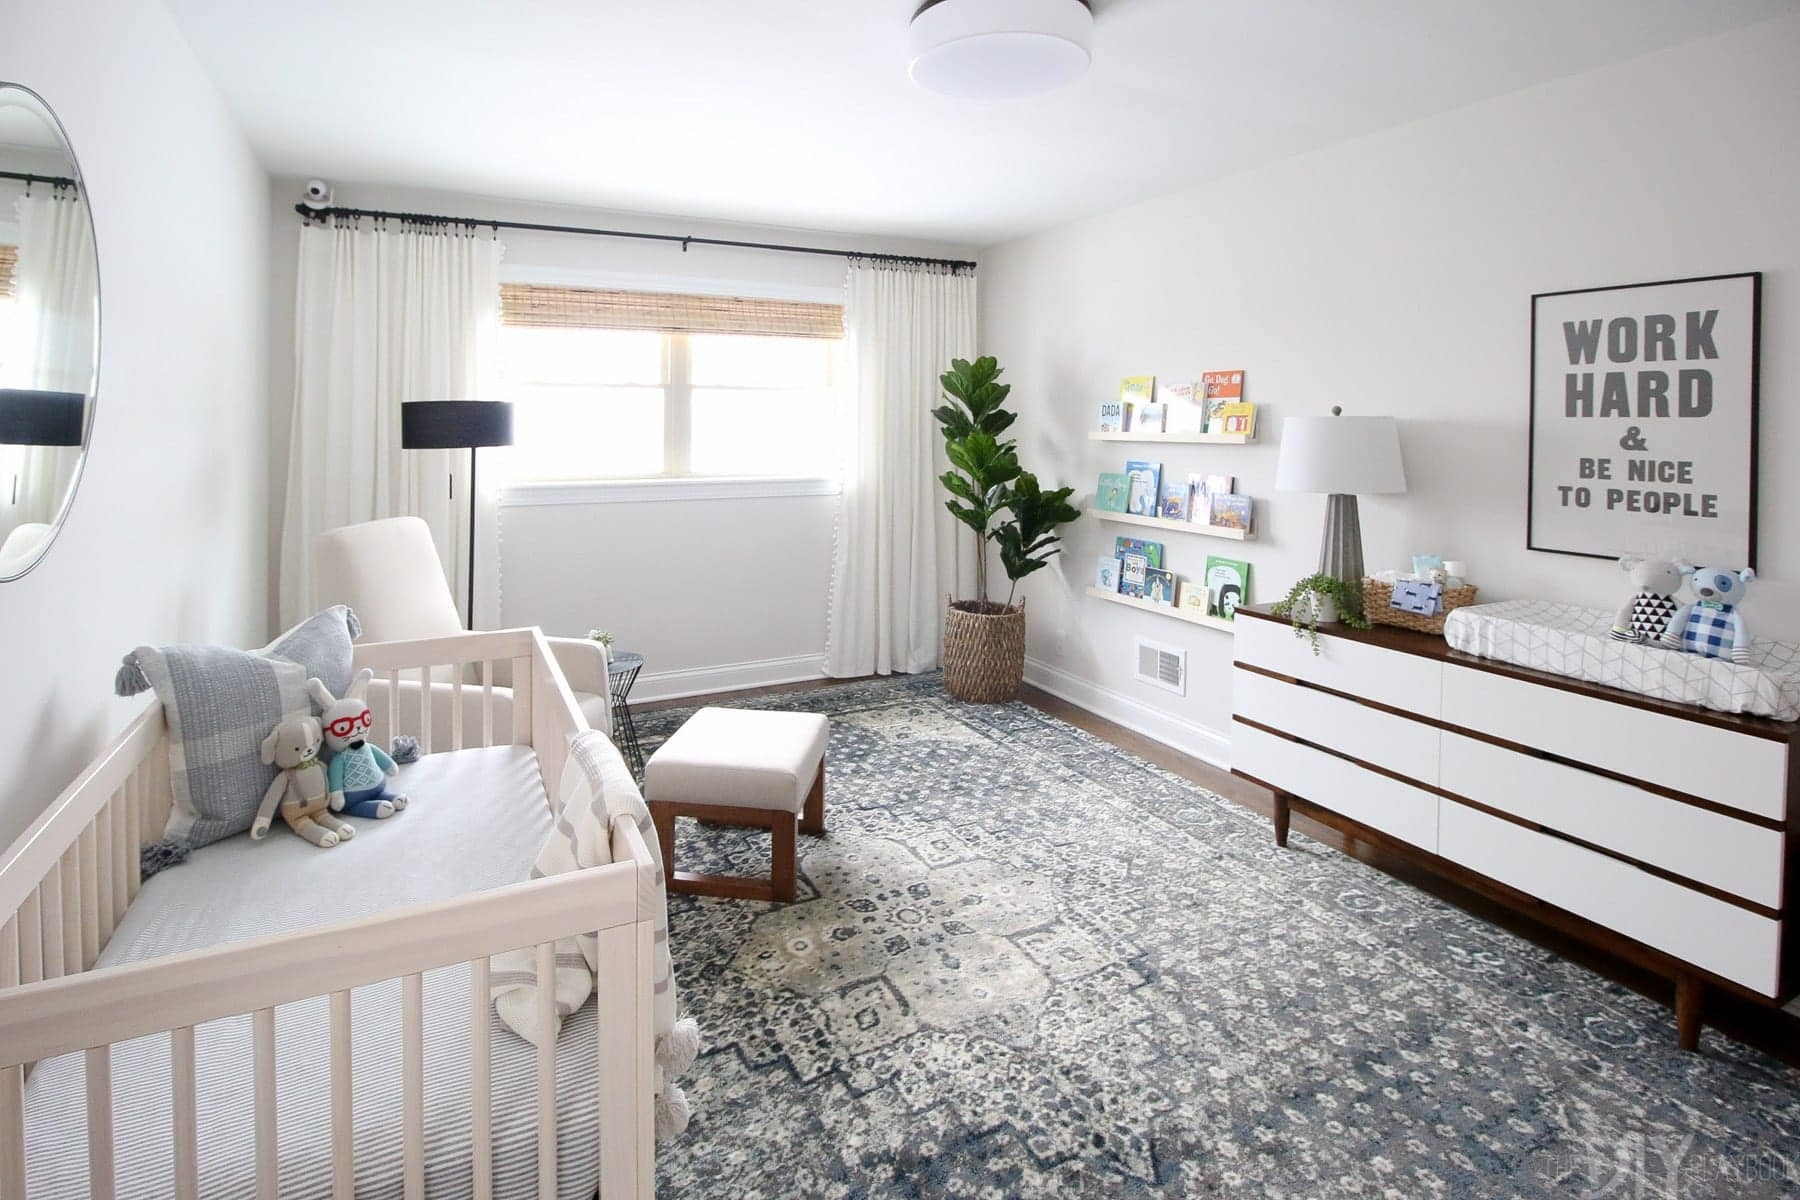 Buying a rug for a nursery can be challenging. We love this navy blue oriental rug in this space.